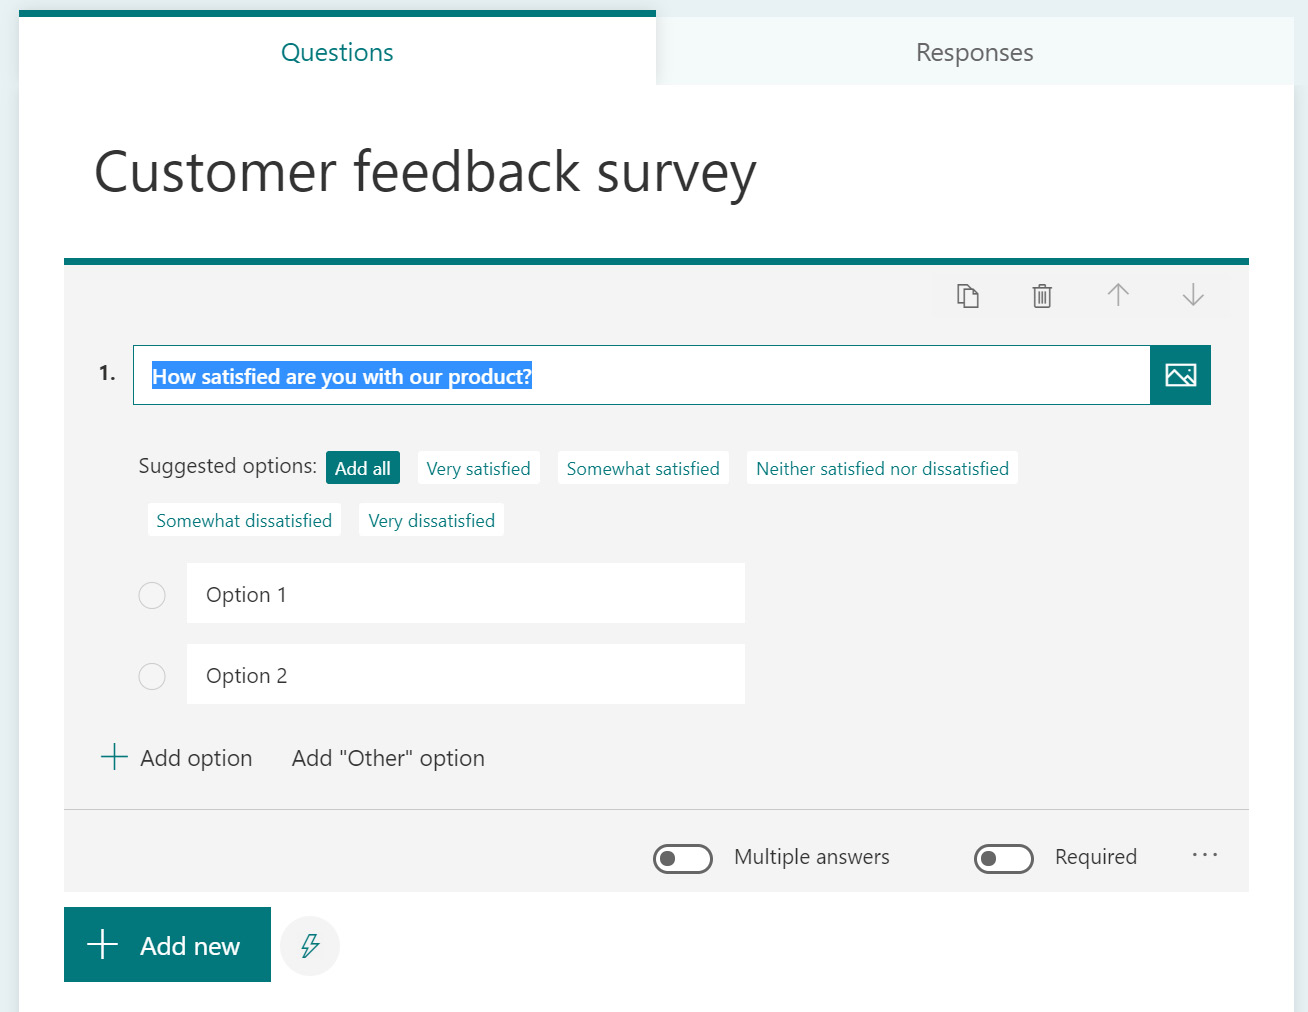 Figure 1.2 – Suggested options on a survey question